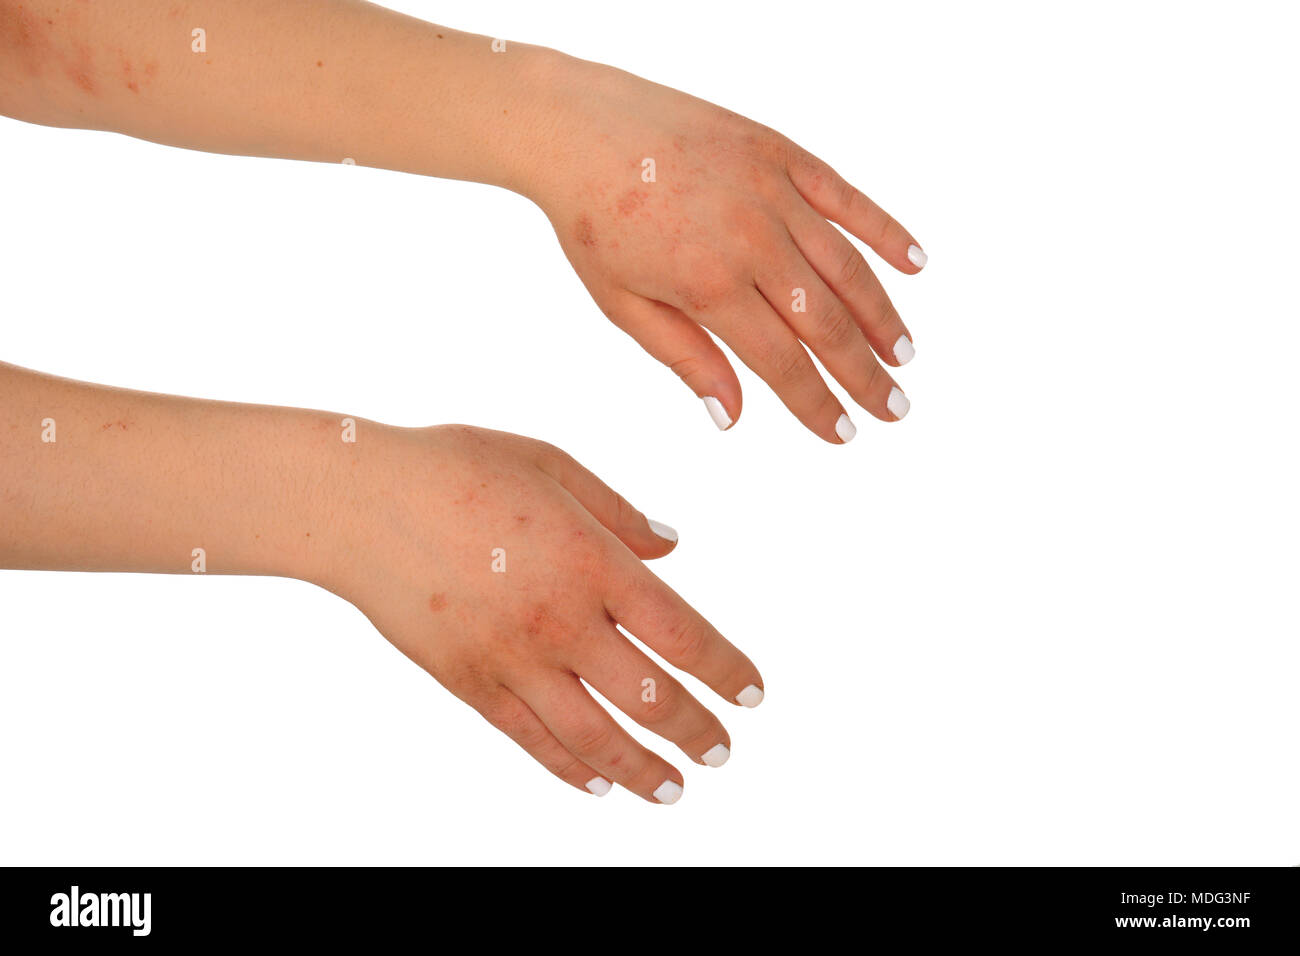 Dermatitis Eczema on the skin of the woman's hand Stock